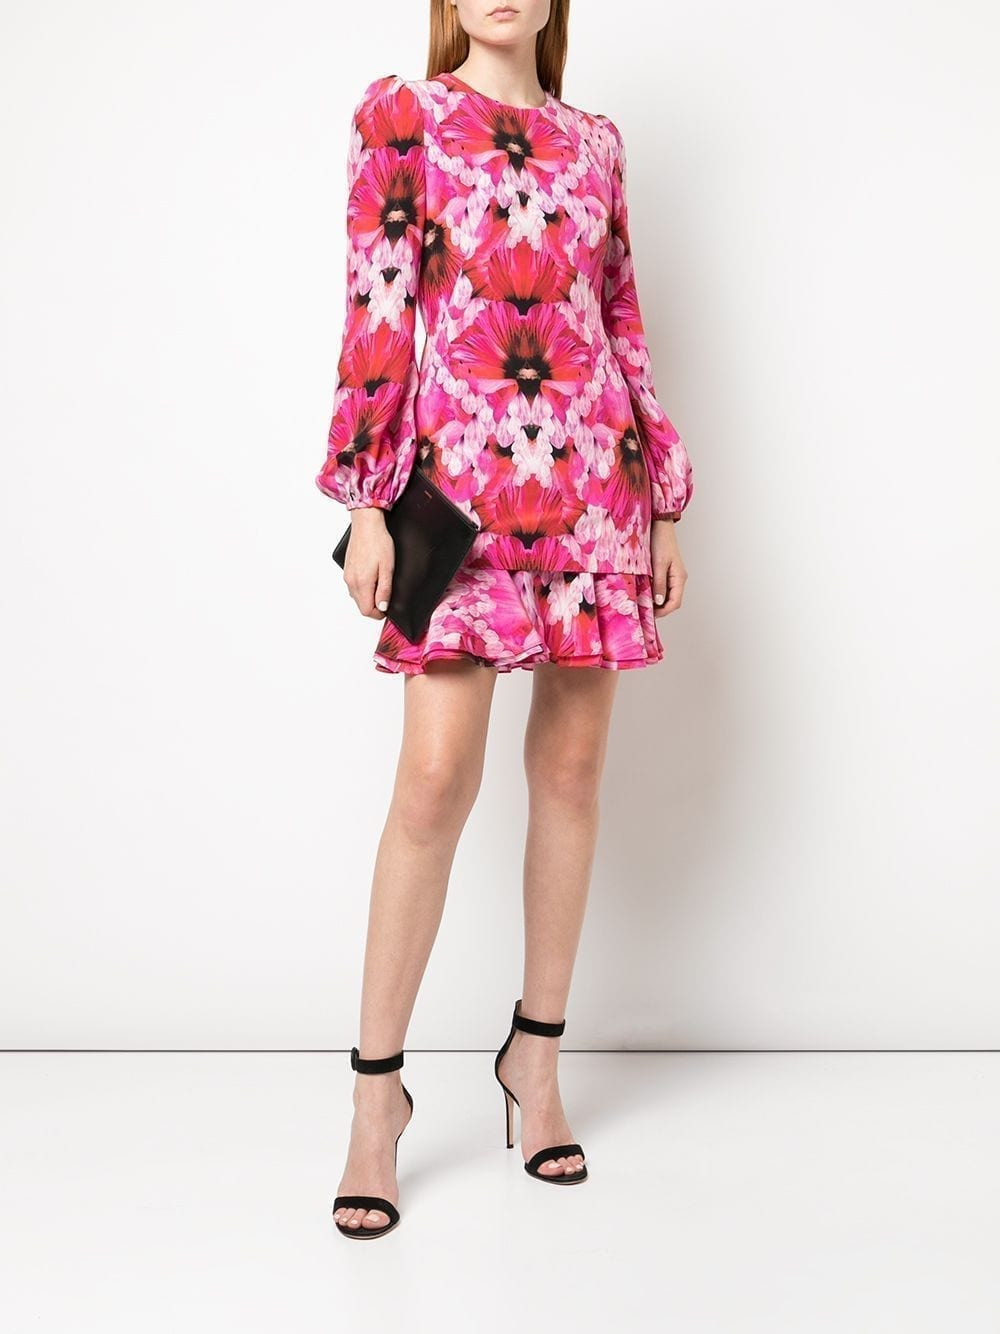 ALEXANDER MCQUEEN Floral Print Ruffled Dress